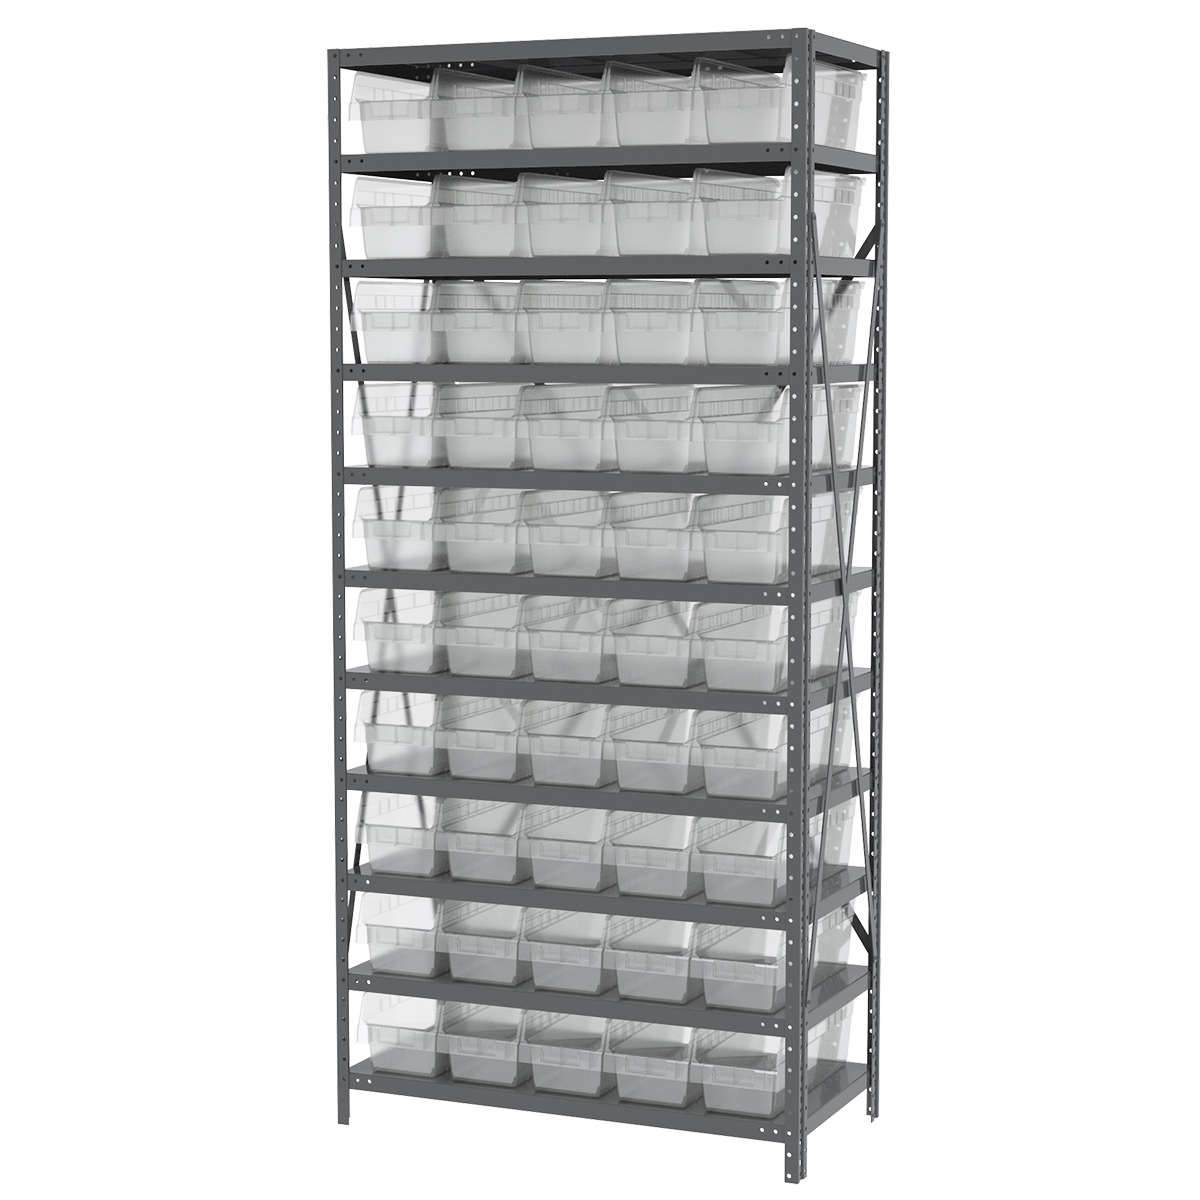 Steel Shelving Kit, 18x36x79, 50 Bins, Gray/Clear.  This item sold in carton quantities of 1.